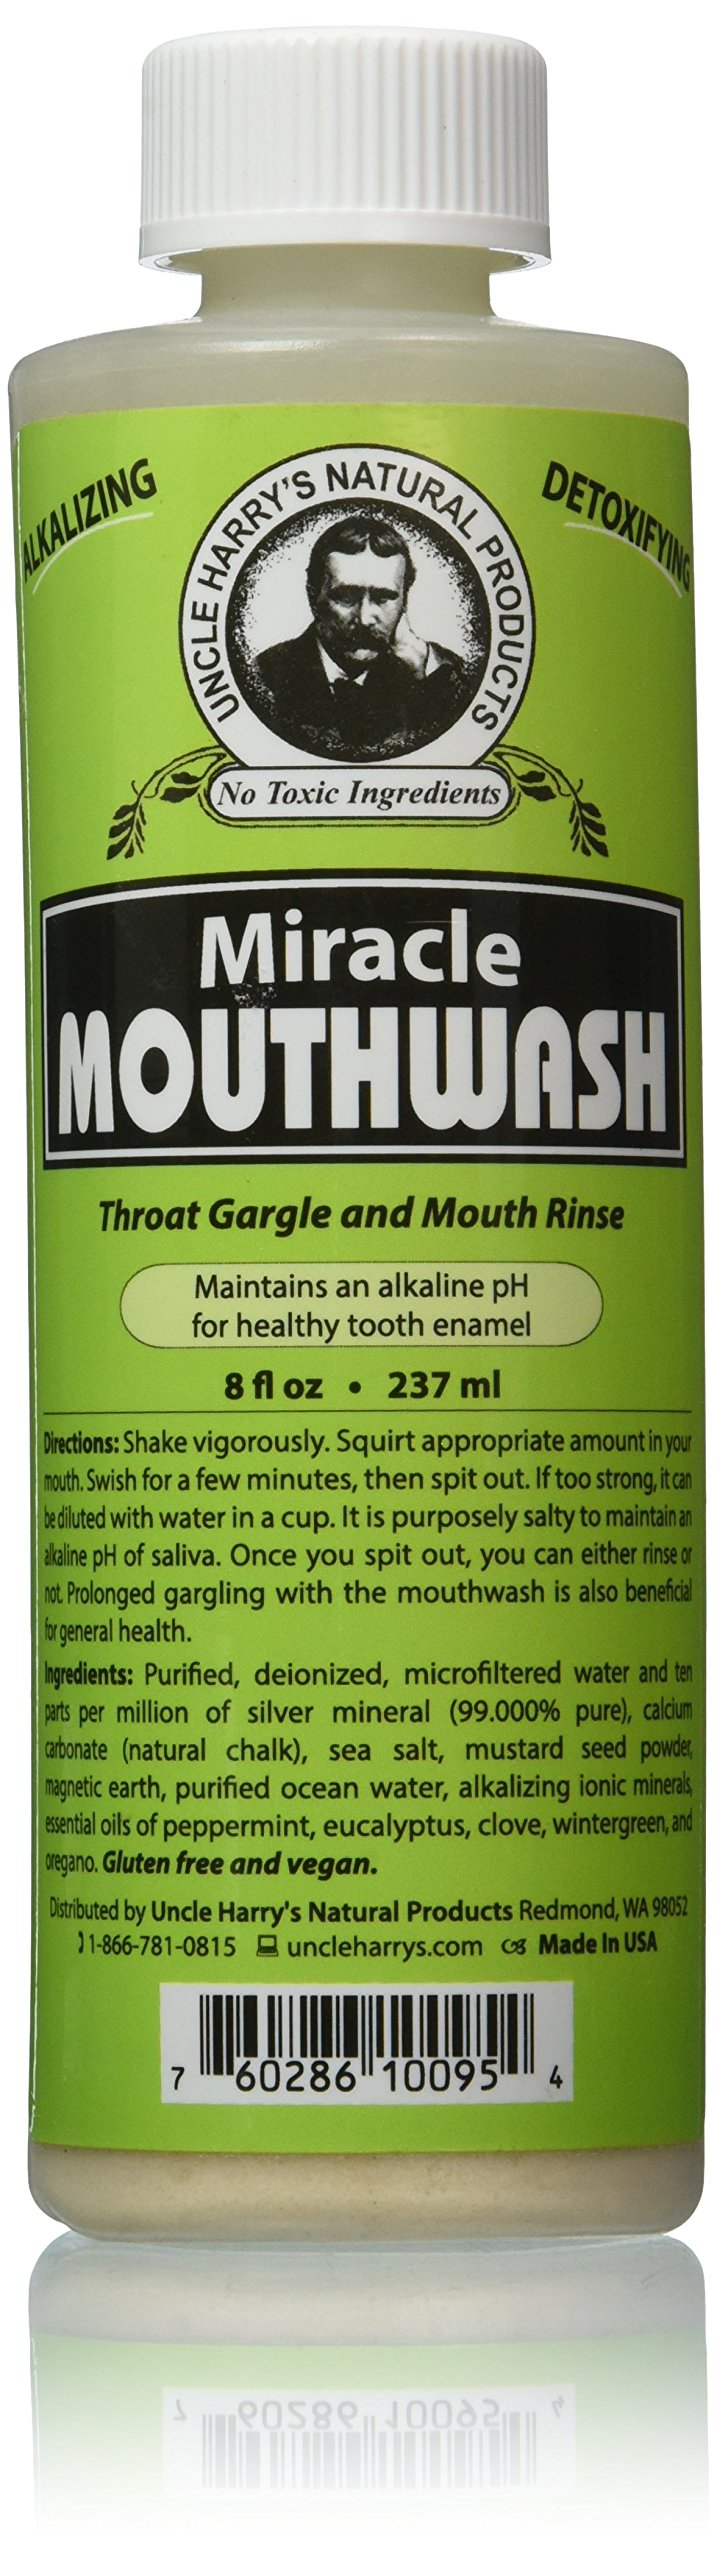 Uncle Harry's Natural Alkalizing Miracle Mouthwash - Balances pH & Soothes Throat While Freshening Breath (8 fl. oz.)